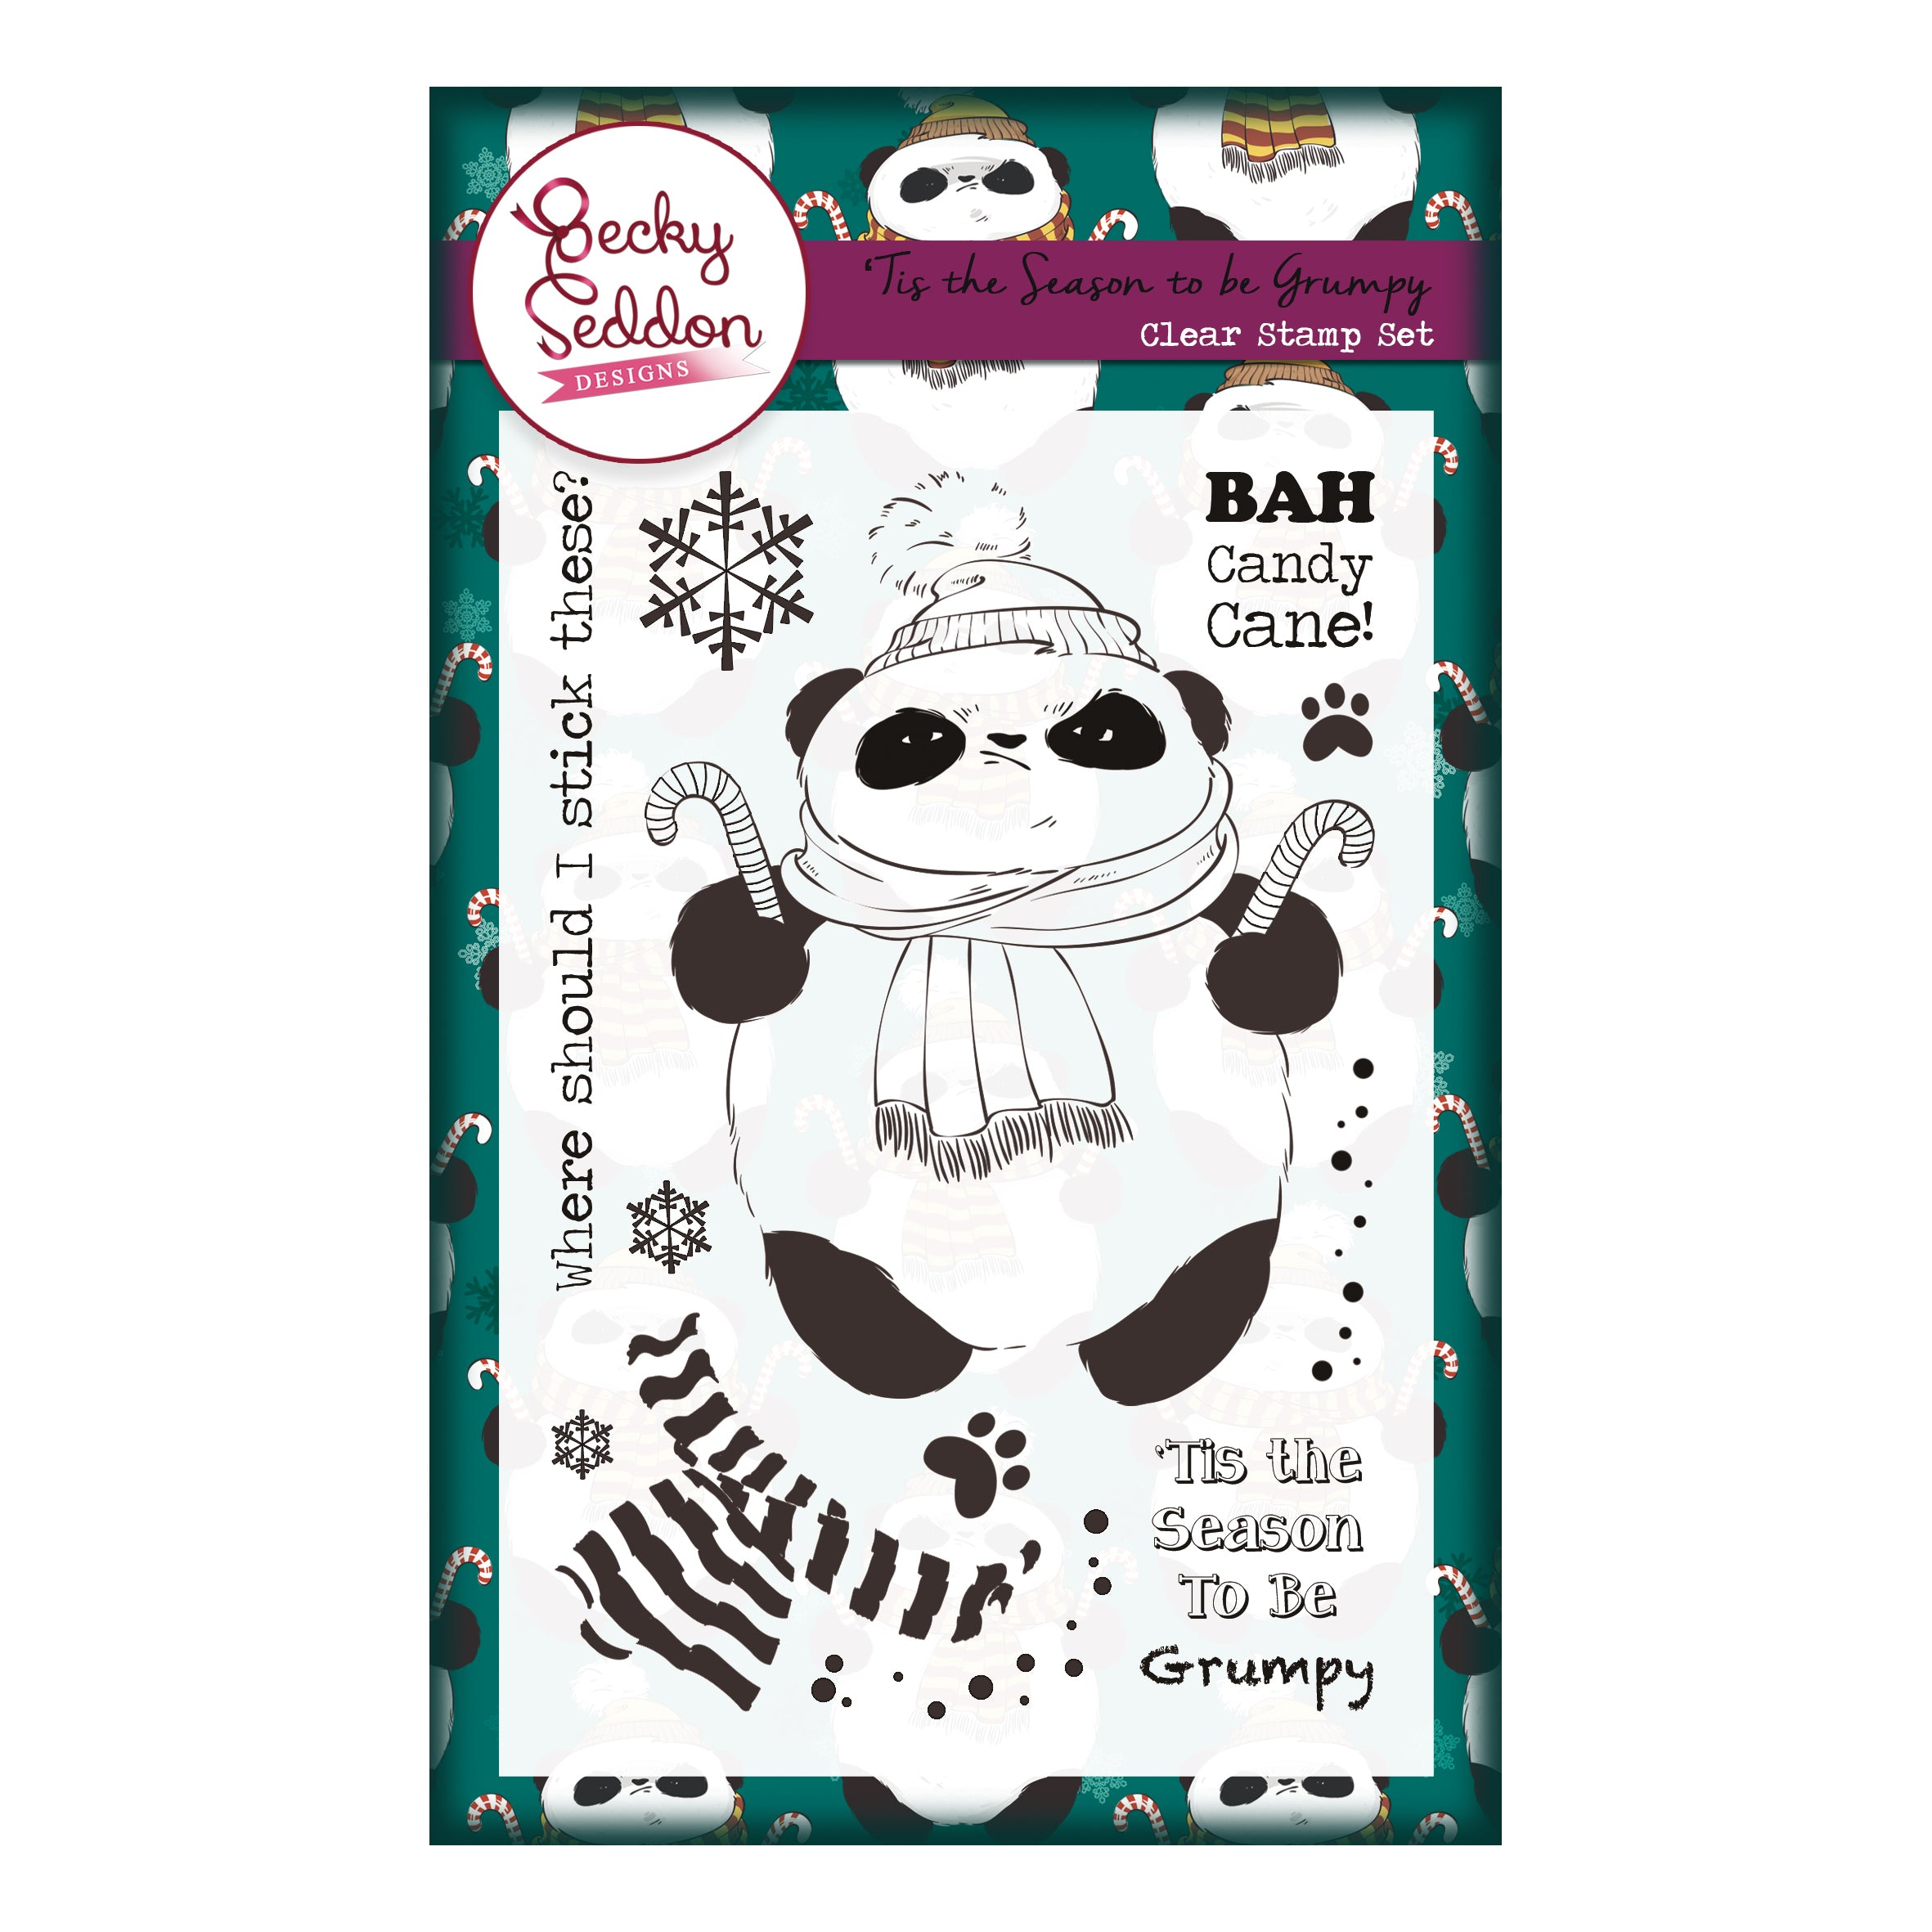 Becky Seddon Designs 'Tis the Season to be Grumpy' A6 Clear Stamp Set, Art & Craft Kits by The Craft House